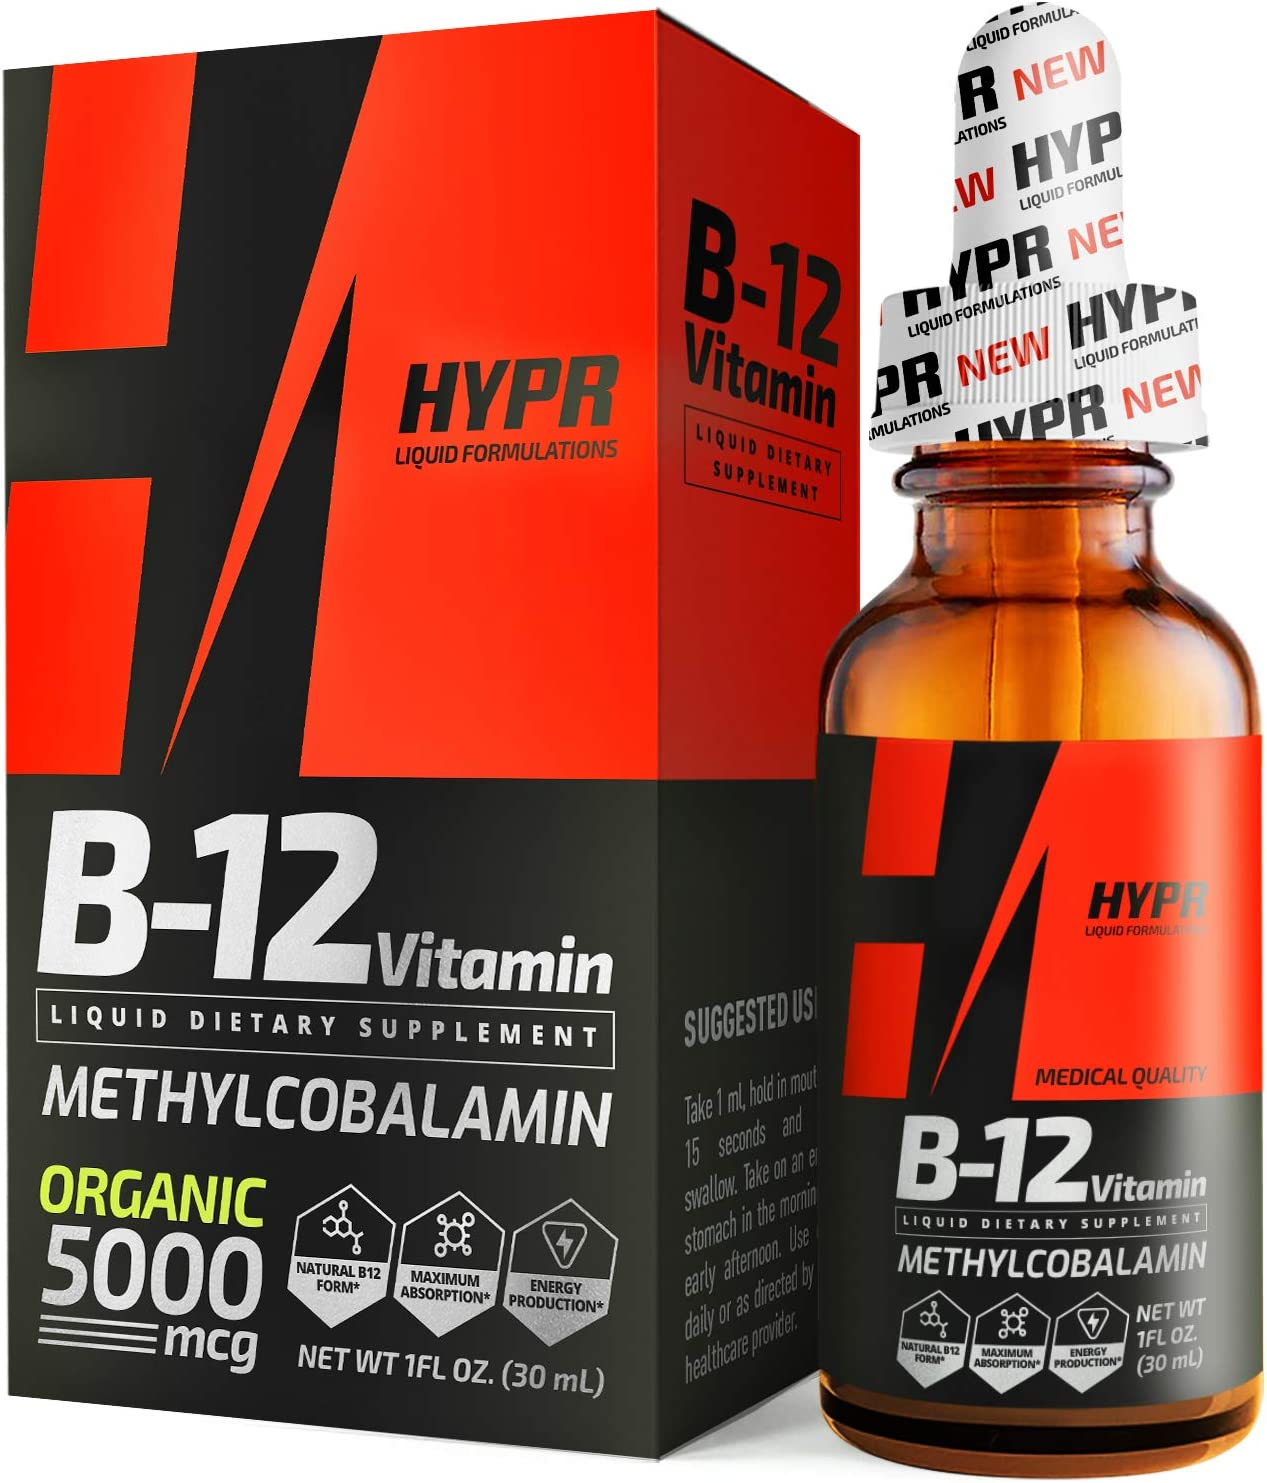 HYPR Vitamin B12 Sublingual Liquid Drops - 5000 MCG Supplement with Methylcobalamin (Methyl B-12) - Max Absorption B 12 to Increase Energy & Metabolism - Vegan Friendly - 1 fl oz